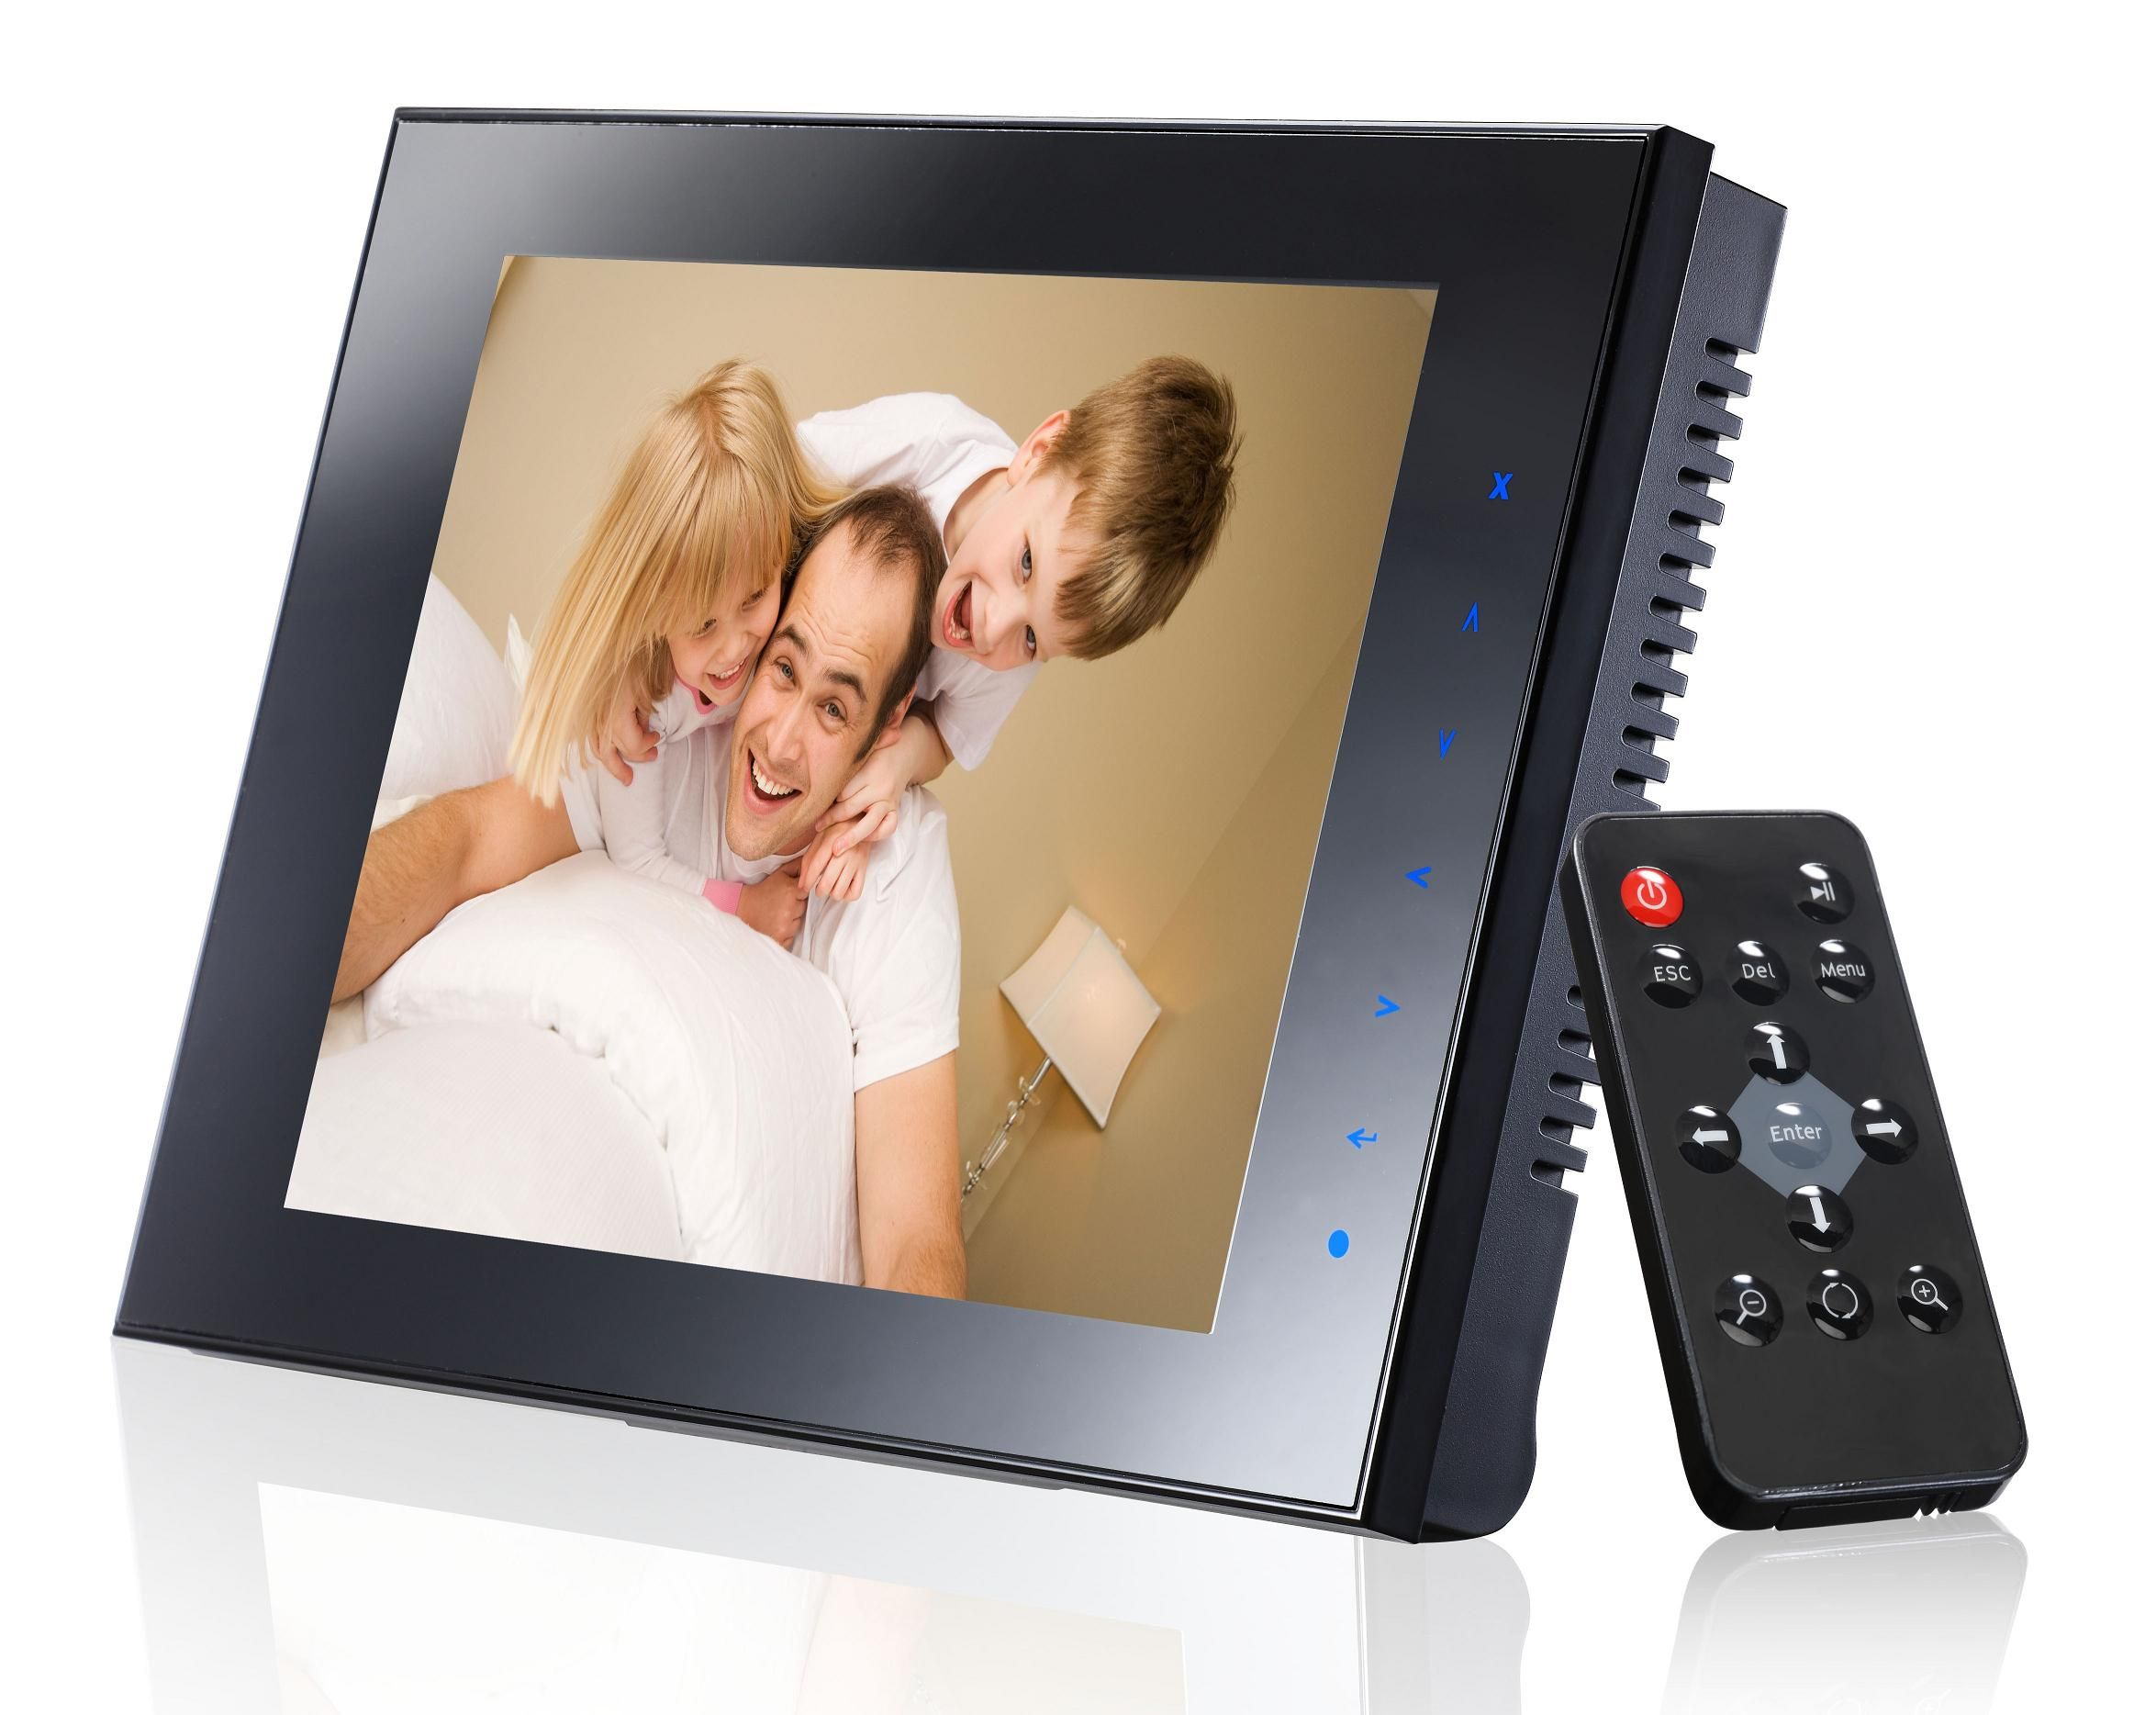 v4 electronic offer the best large digital photo frame with competitve price remote sounder pinterest digital photo frame - Electronic Photo Frame